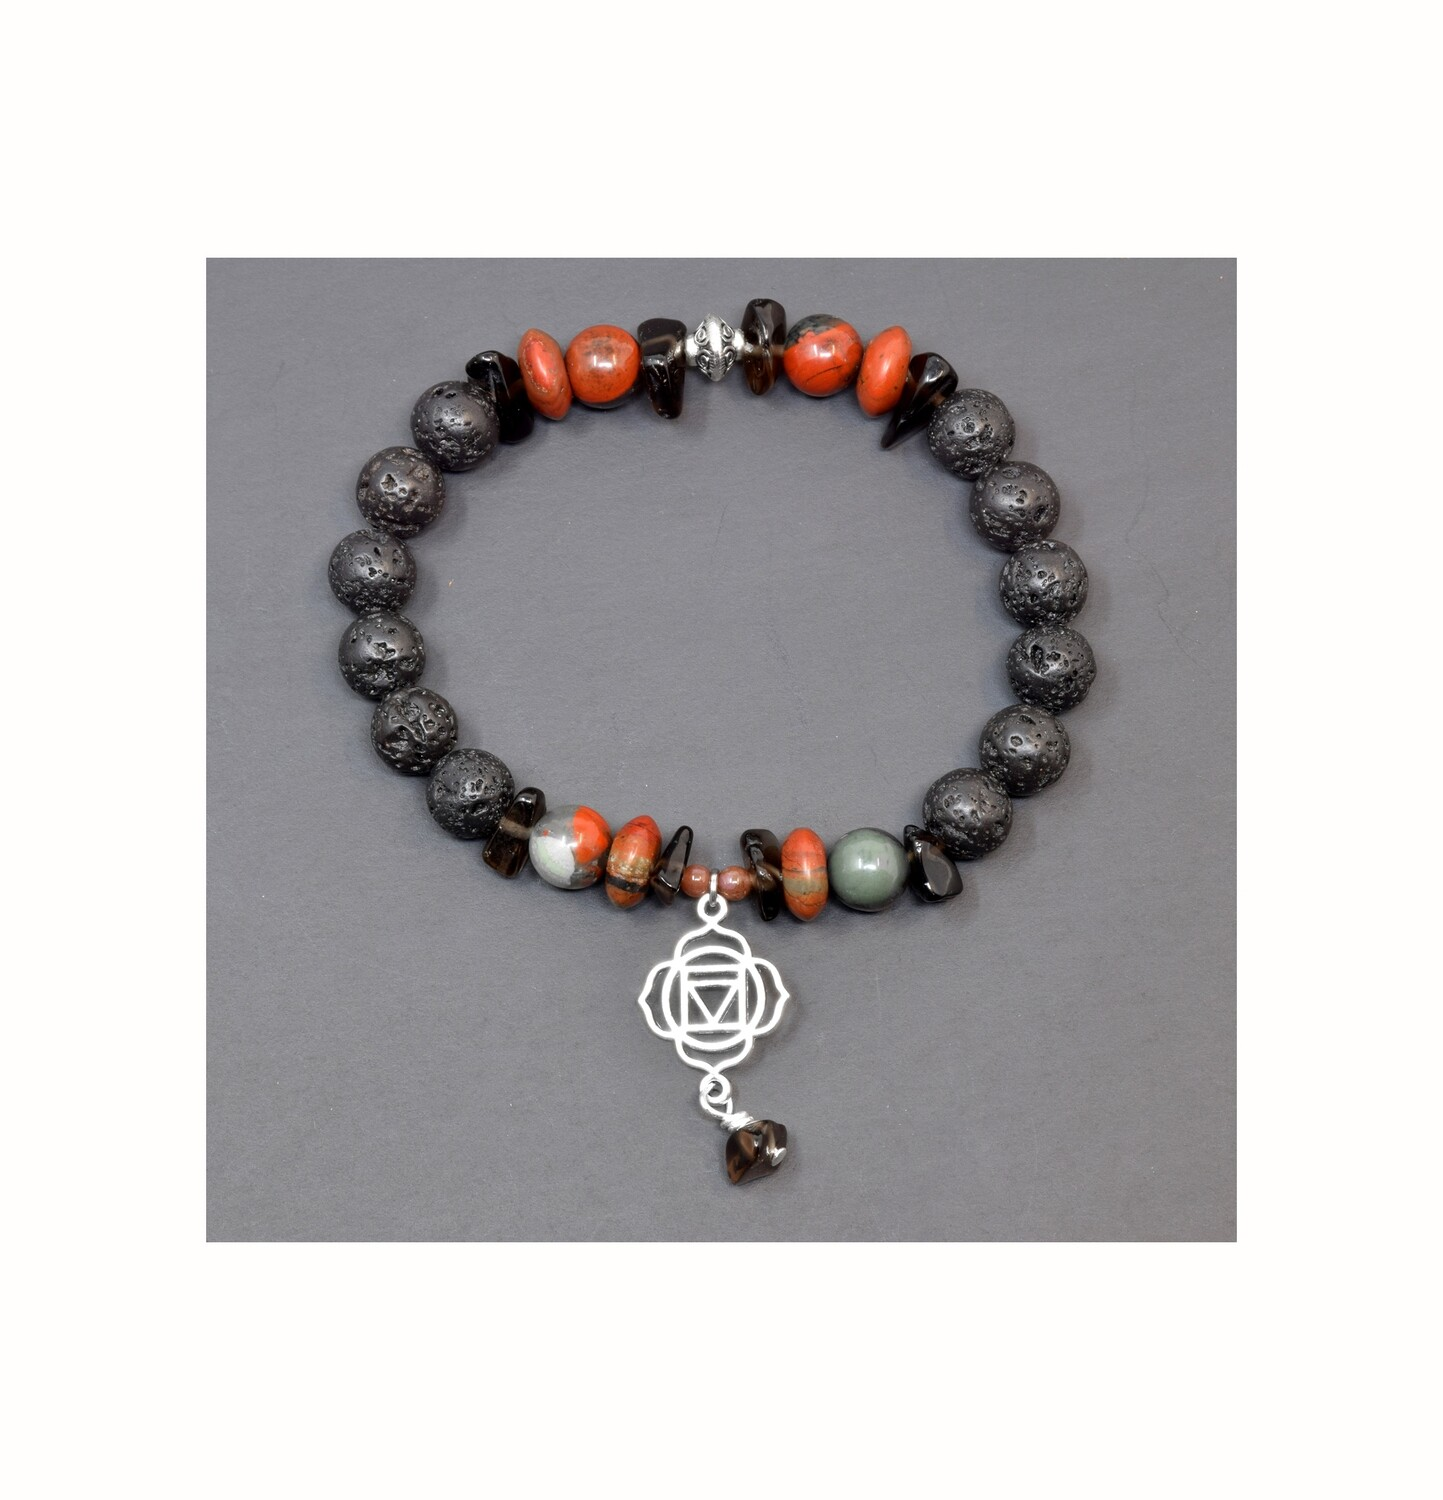 "Reiki Charged Muladhara (Root Chakra) Charm Gemstone & Lava Stone Bracelet (Fits wrists up to 6.75"")"